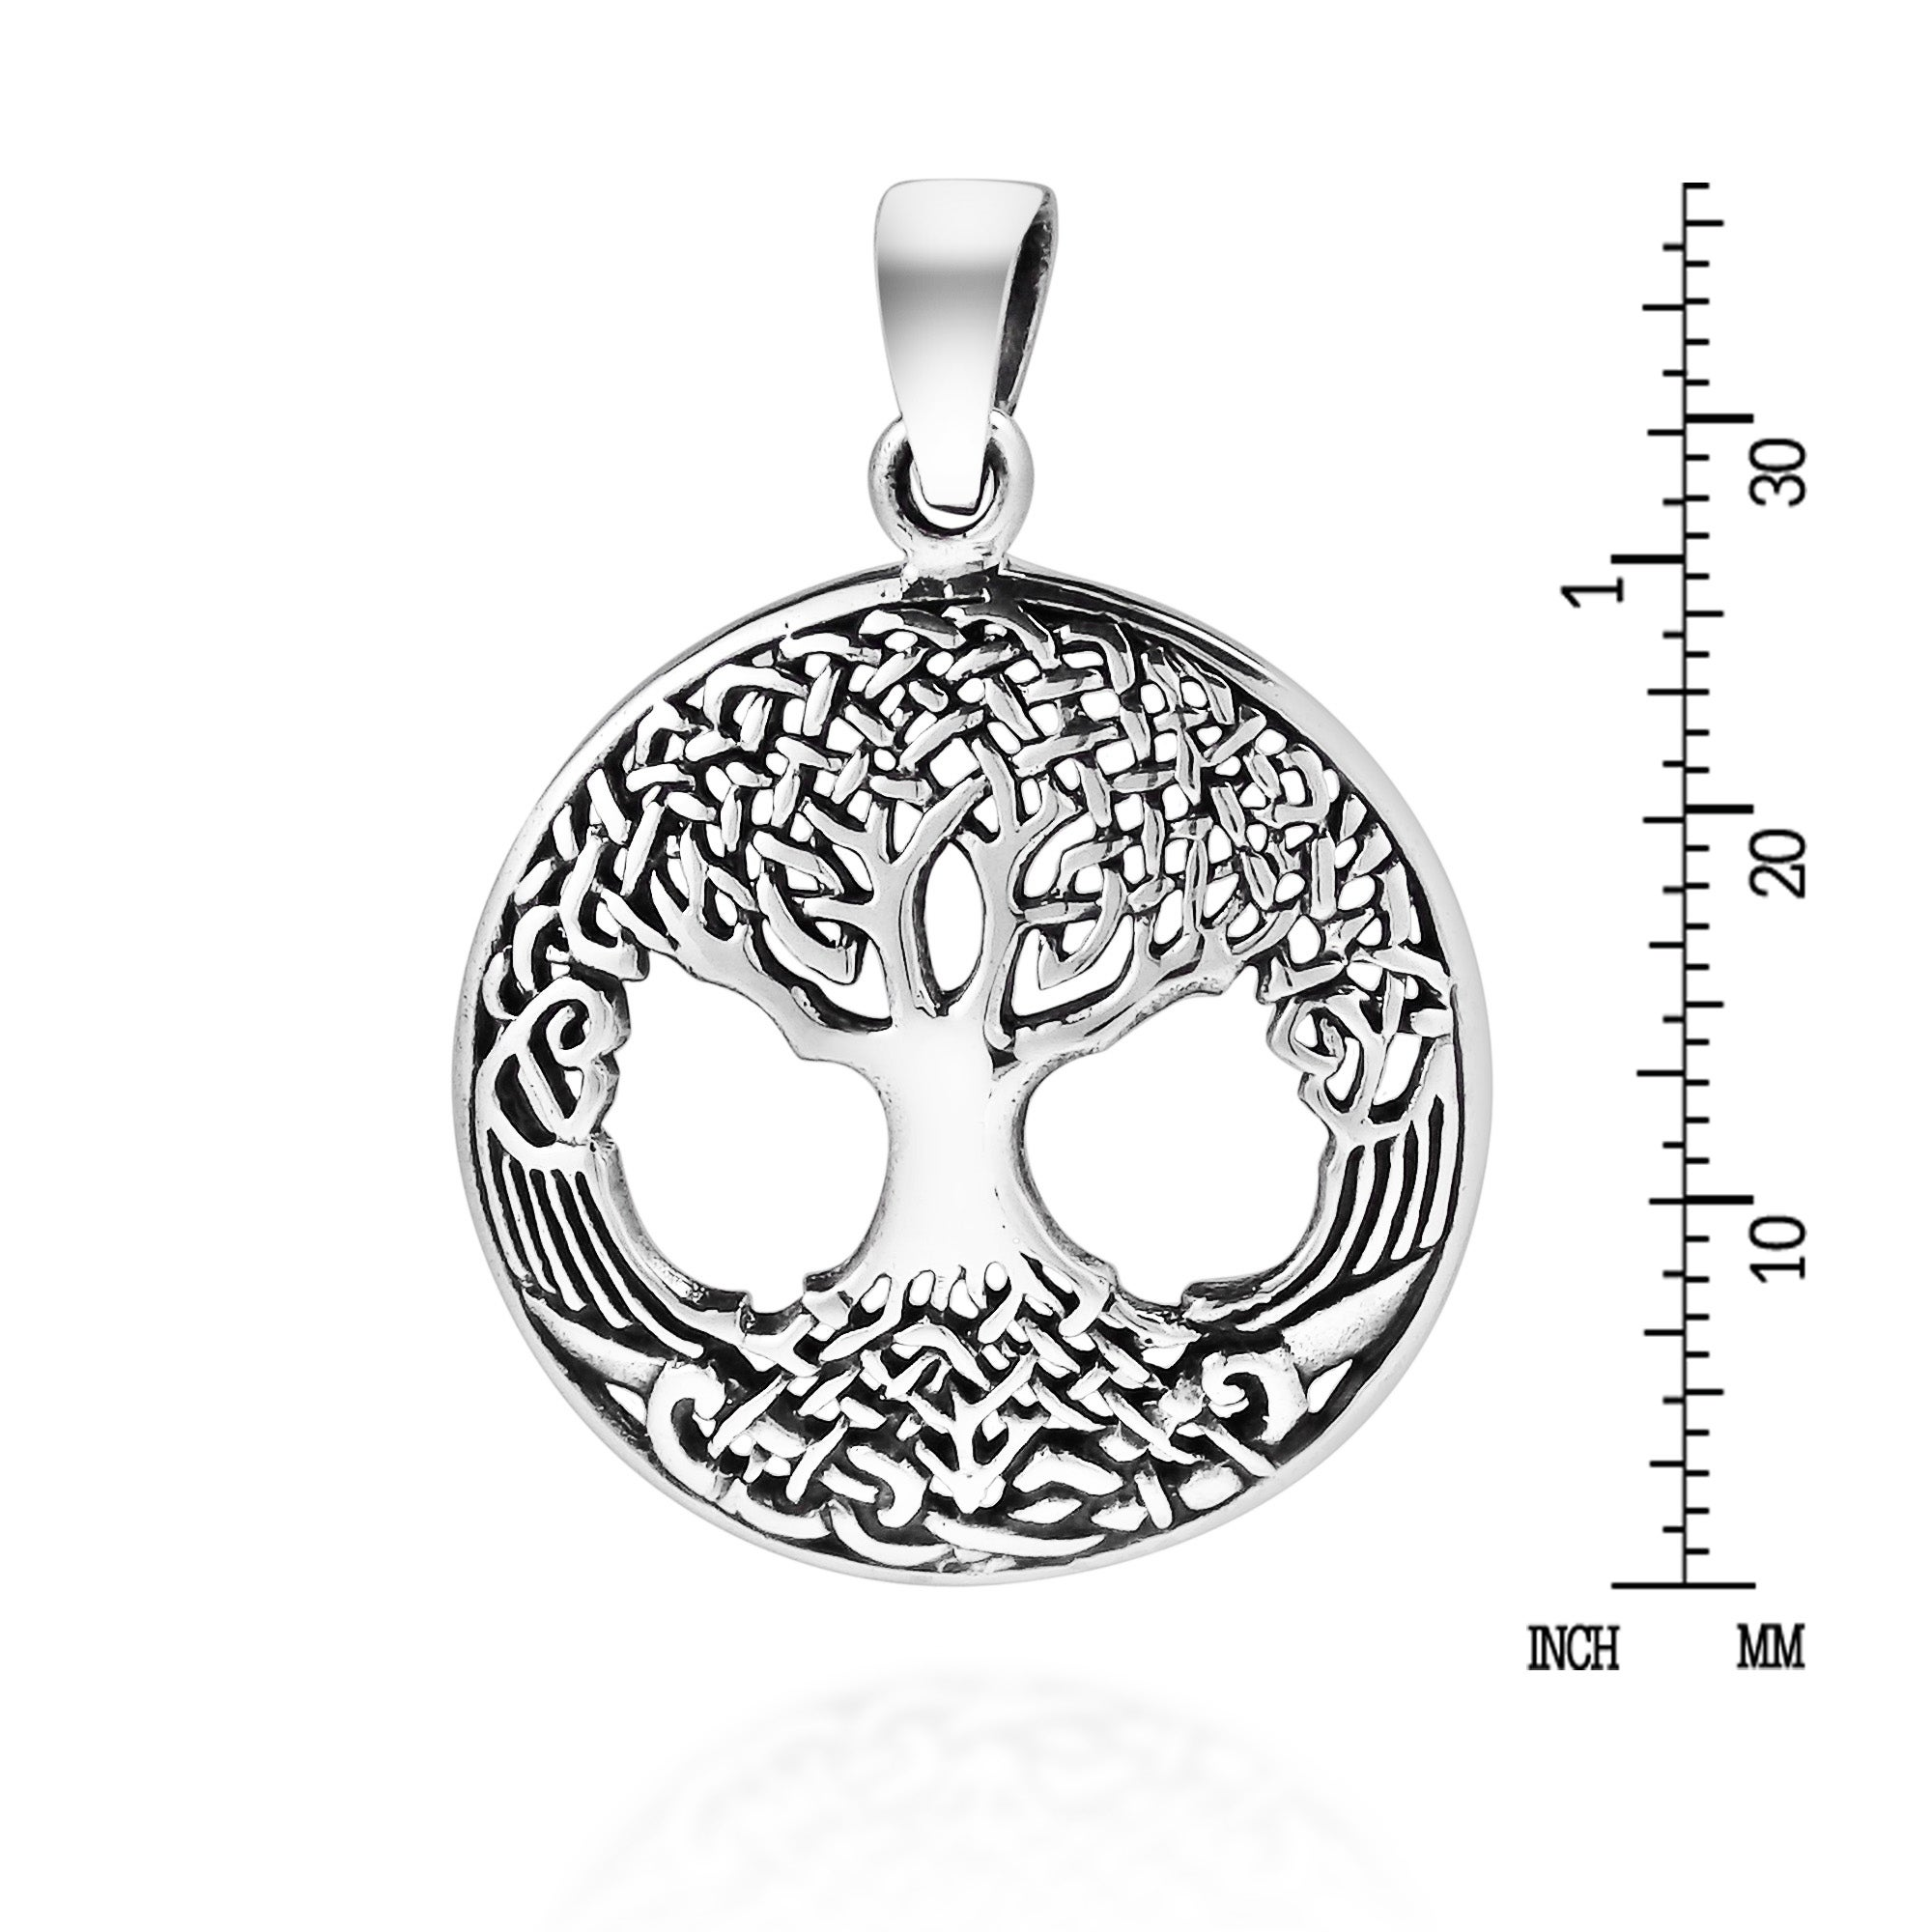 design in triskele gold shop pendant silver with celtic sterling large plated necklace product